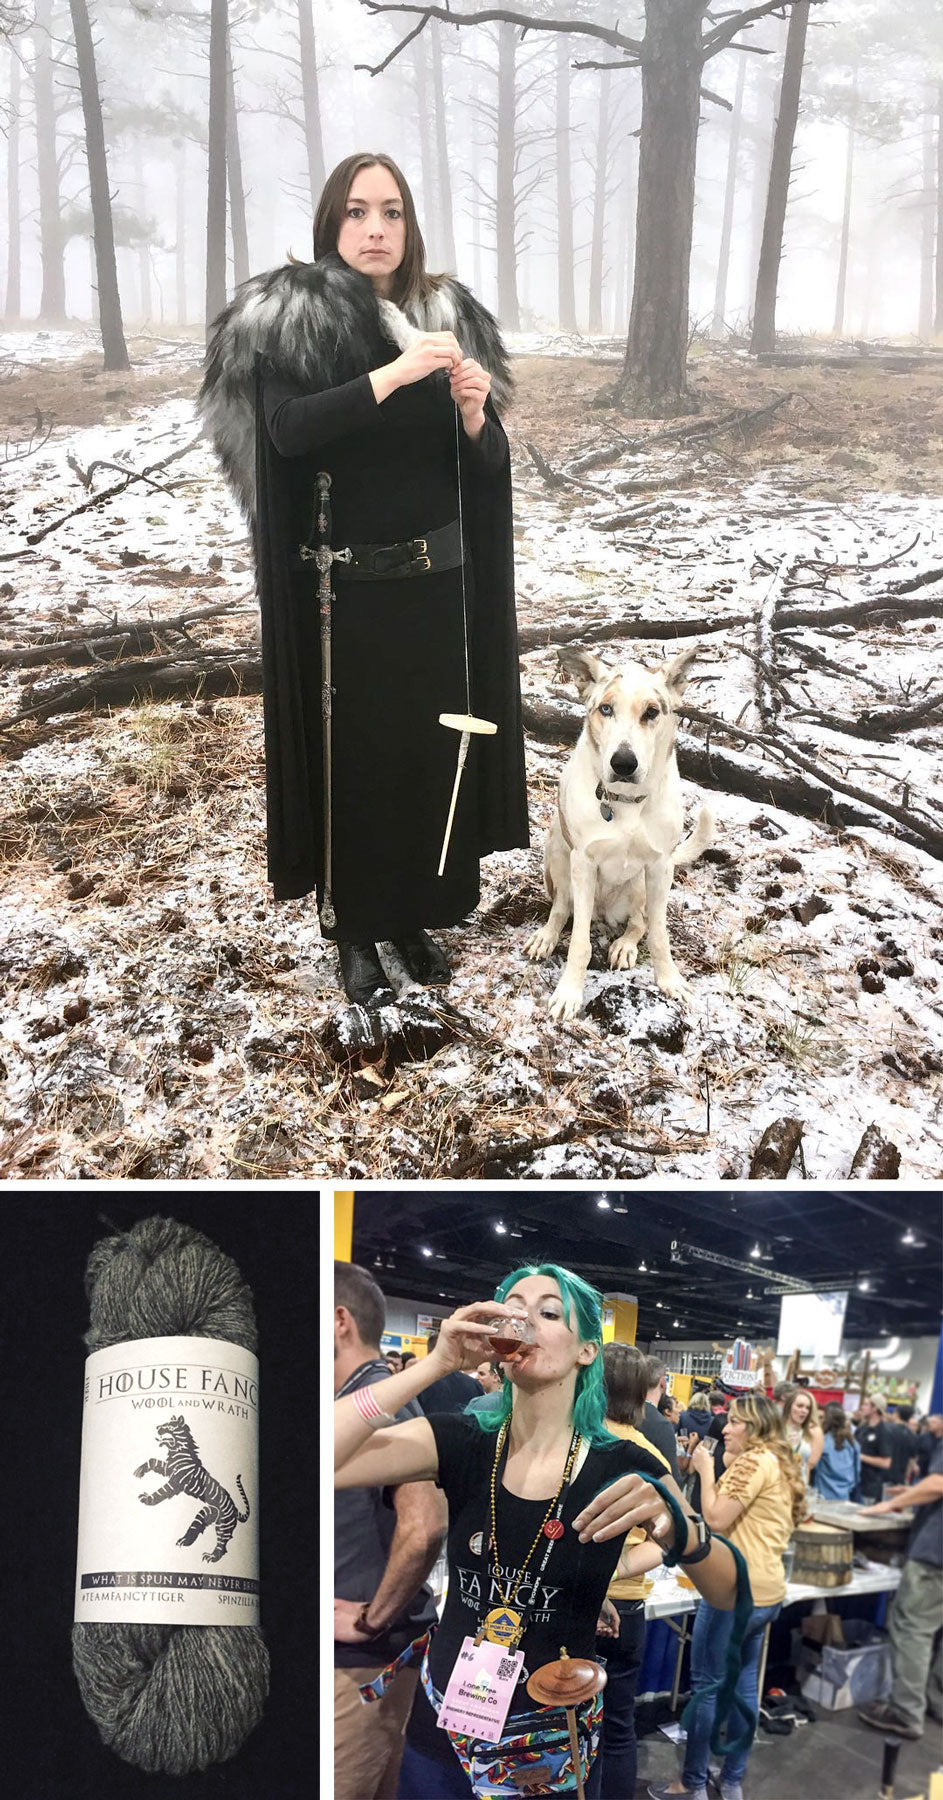 Collage of three images: Kim dressed in black cloak with furs and sword, spinning yarn in a snowy forest, A grey skein of yarn, Melanie spinning while drinking beer at Great American Beer Fest